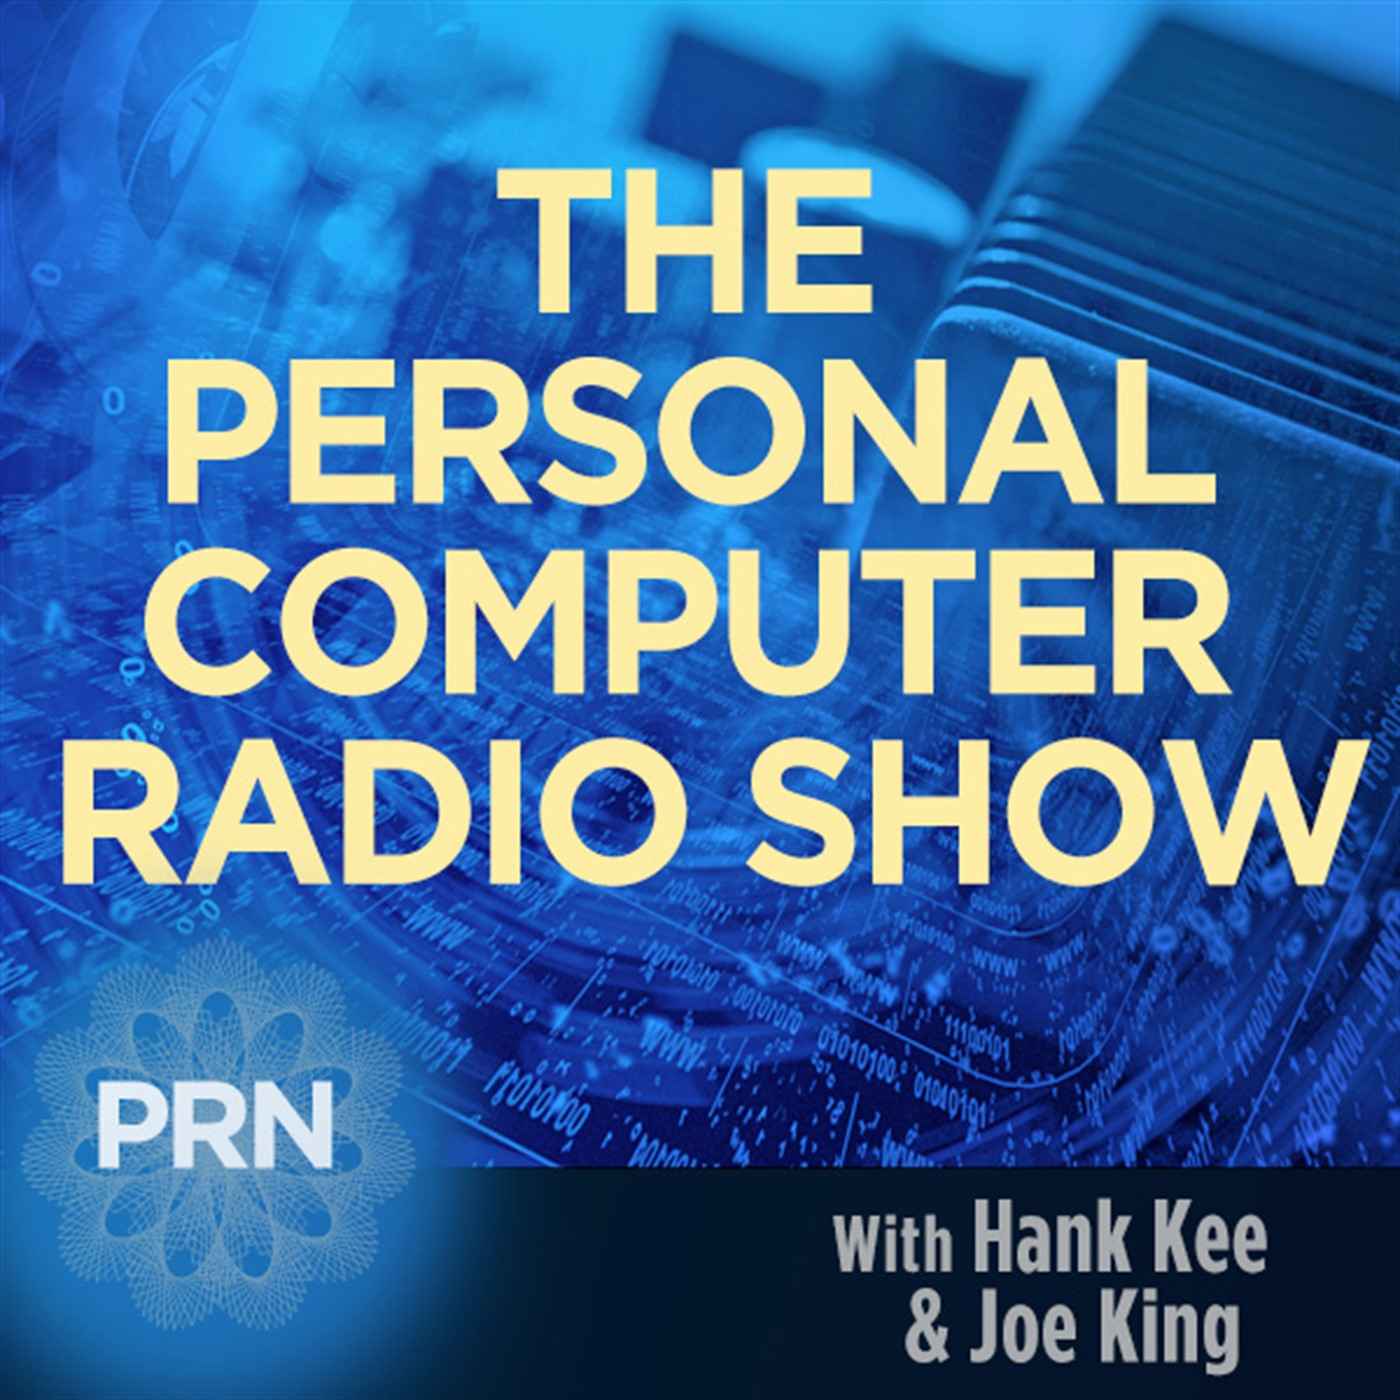 The Personal Computer Radio Show